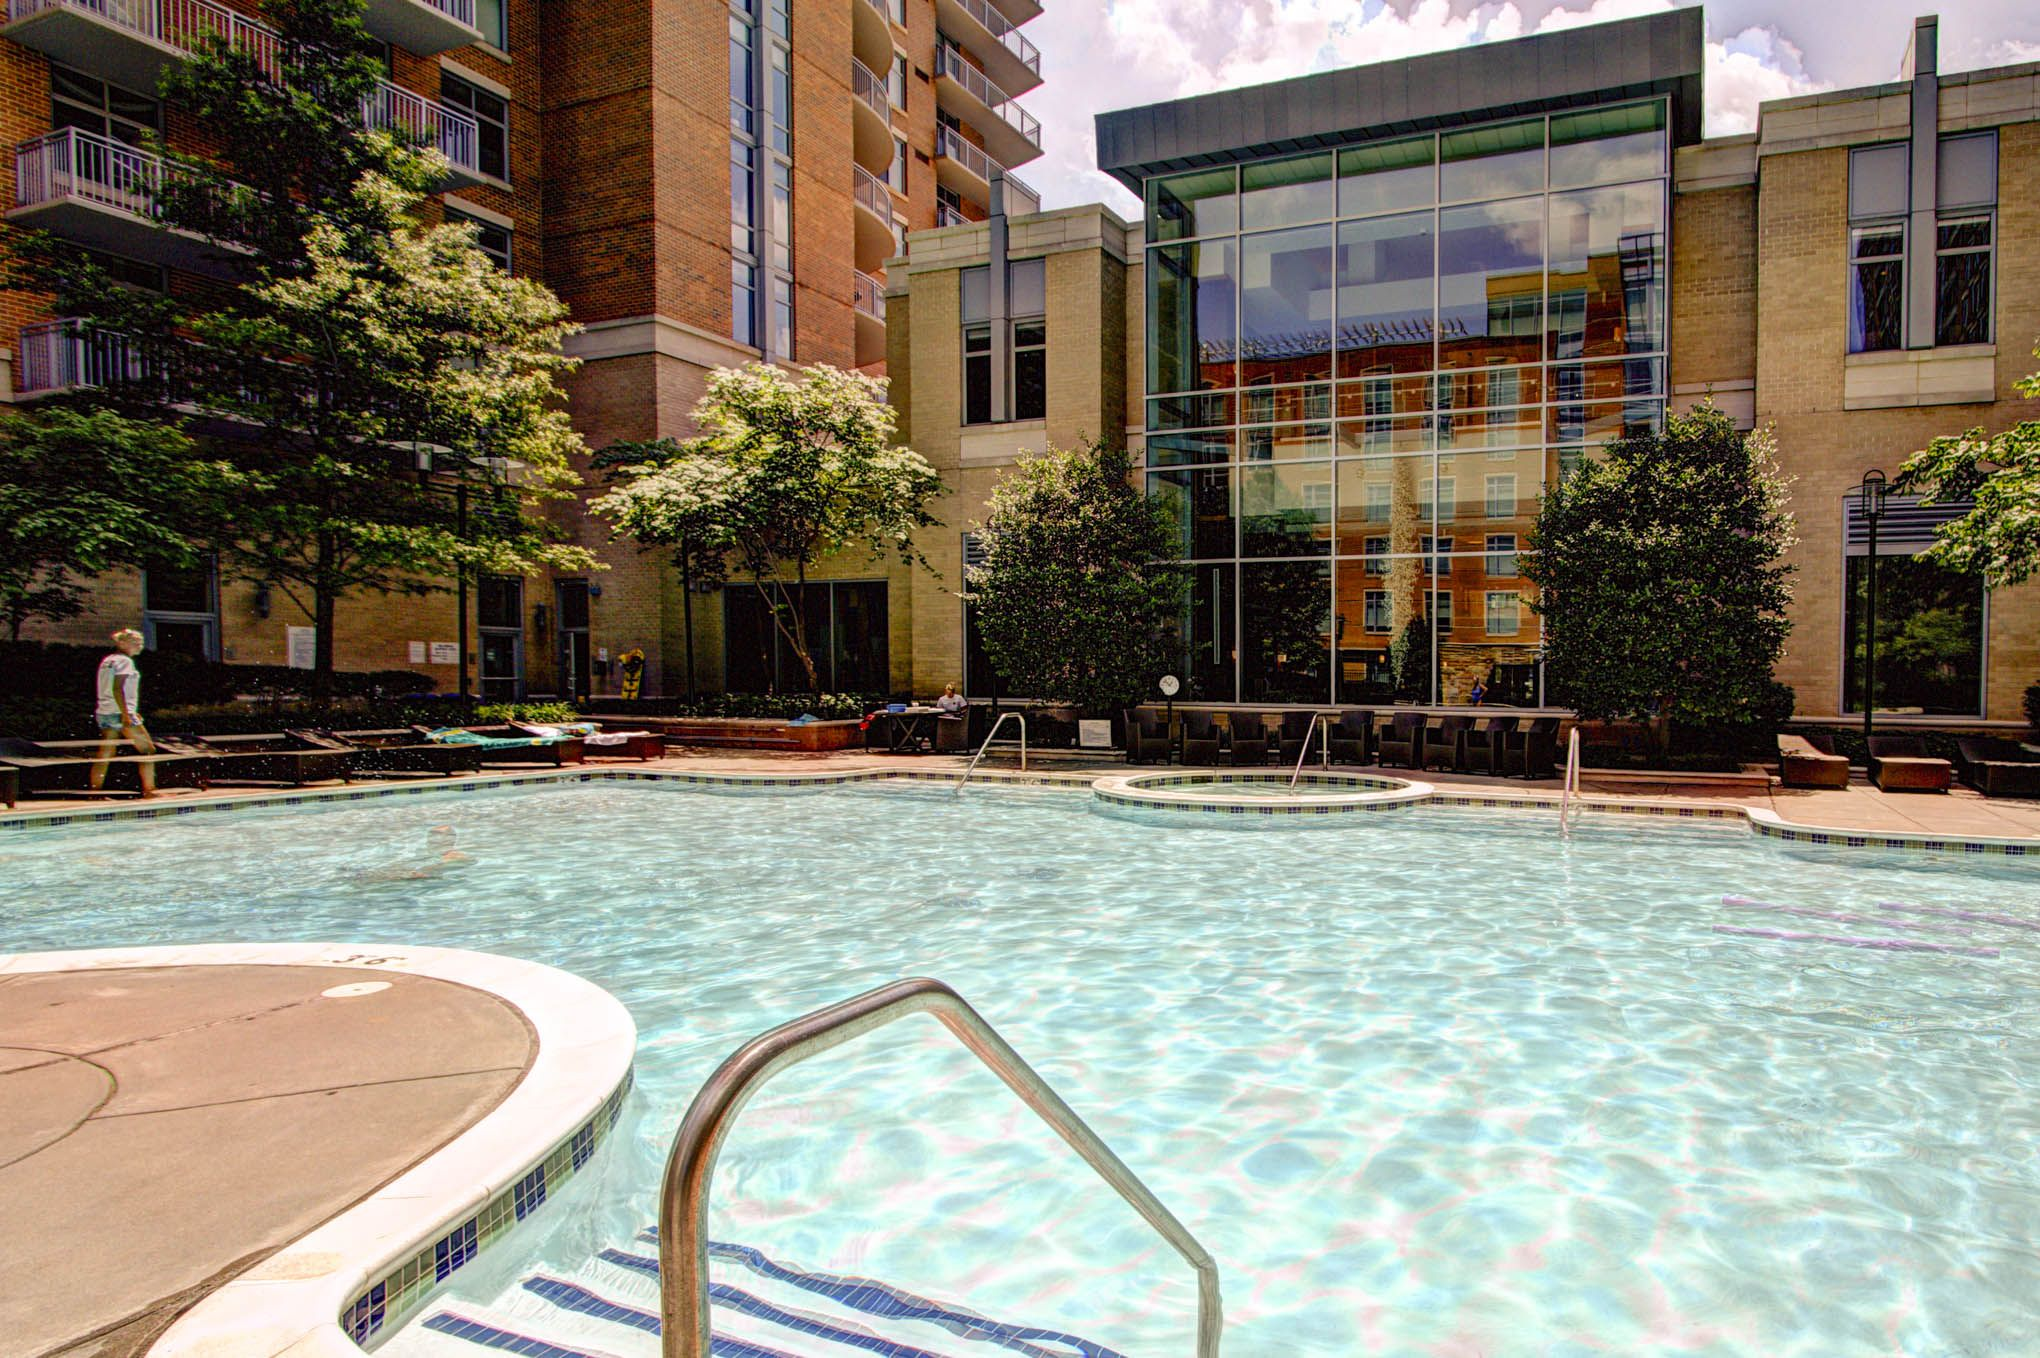 The Pool Pool Reston Town Center Outdoor